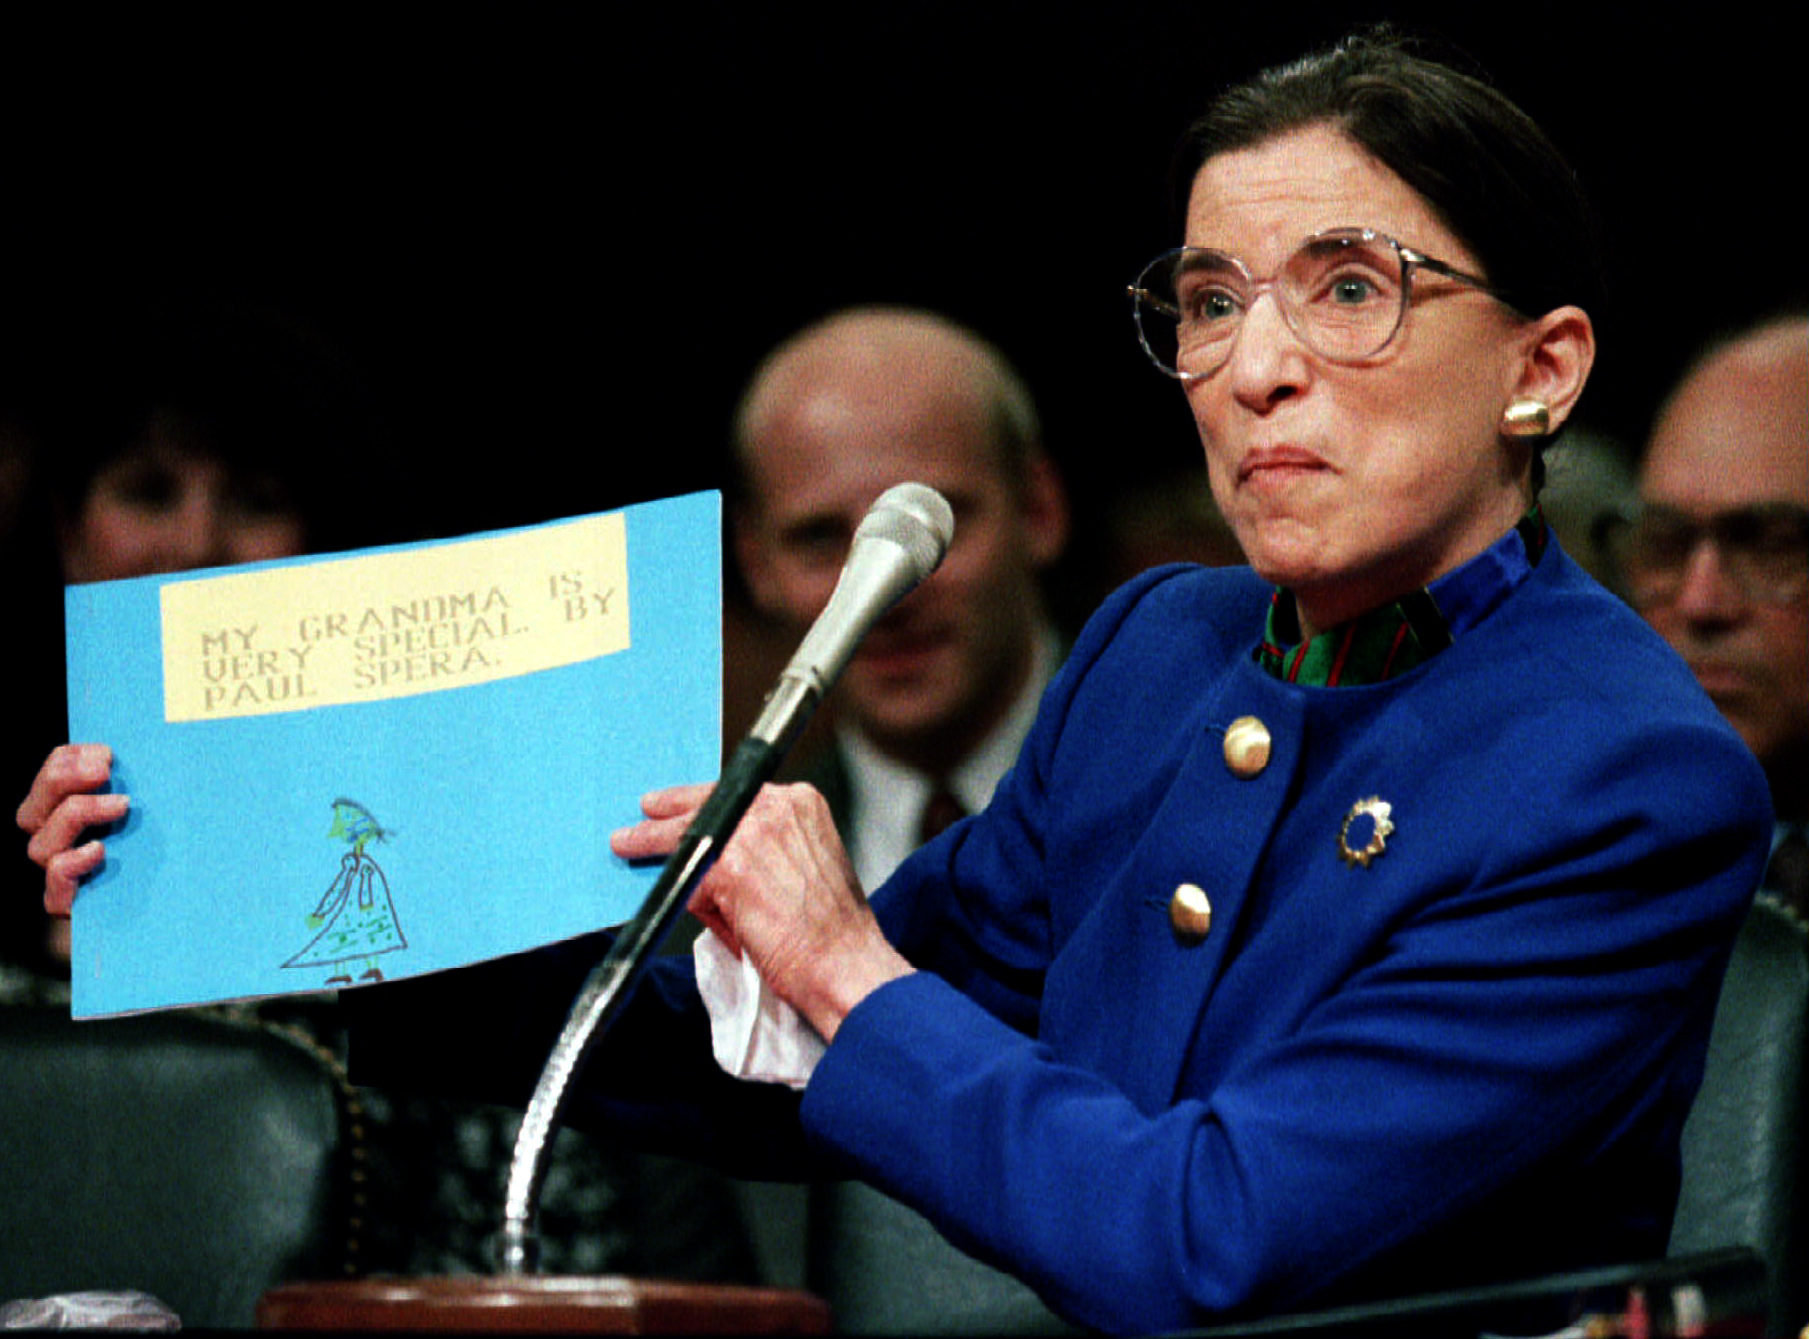 Justice Ruth Bader Ginsburg displays a drawing by her grandson at her 1993 confirmation hearings. (Reuters)